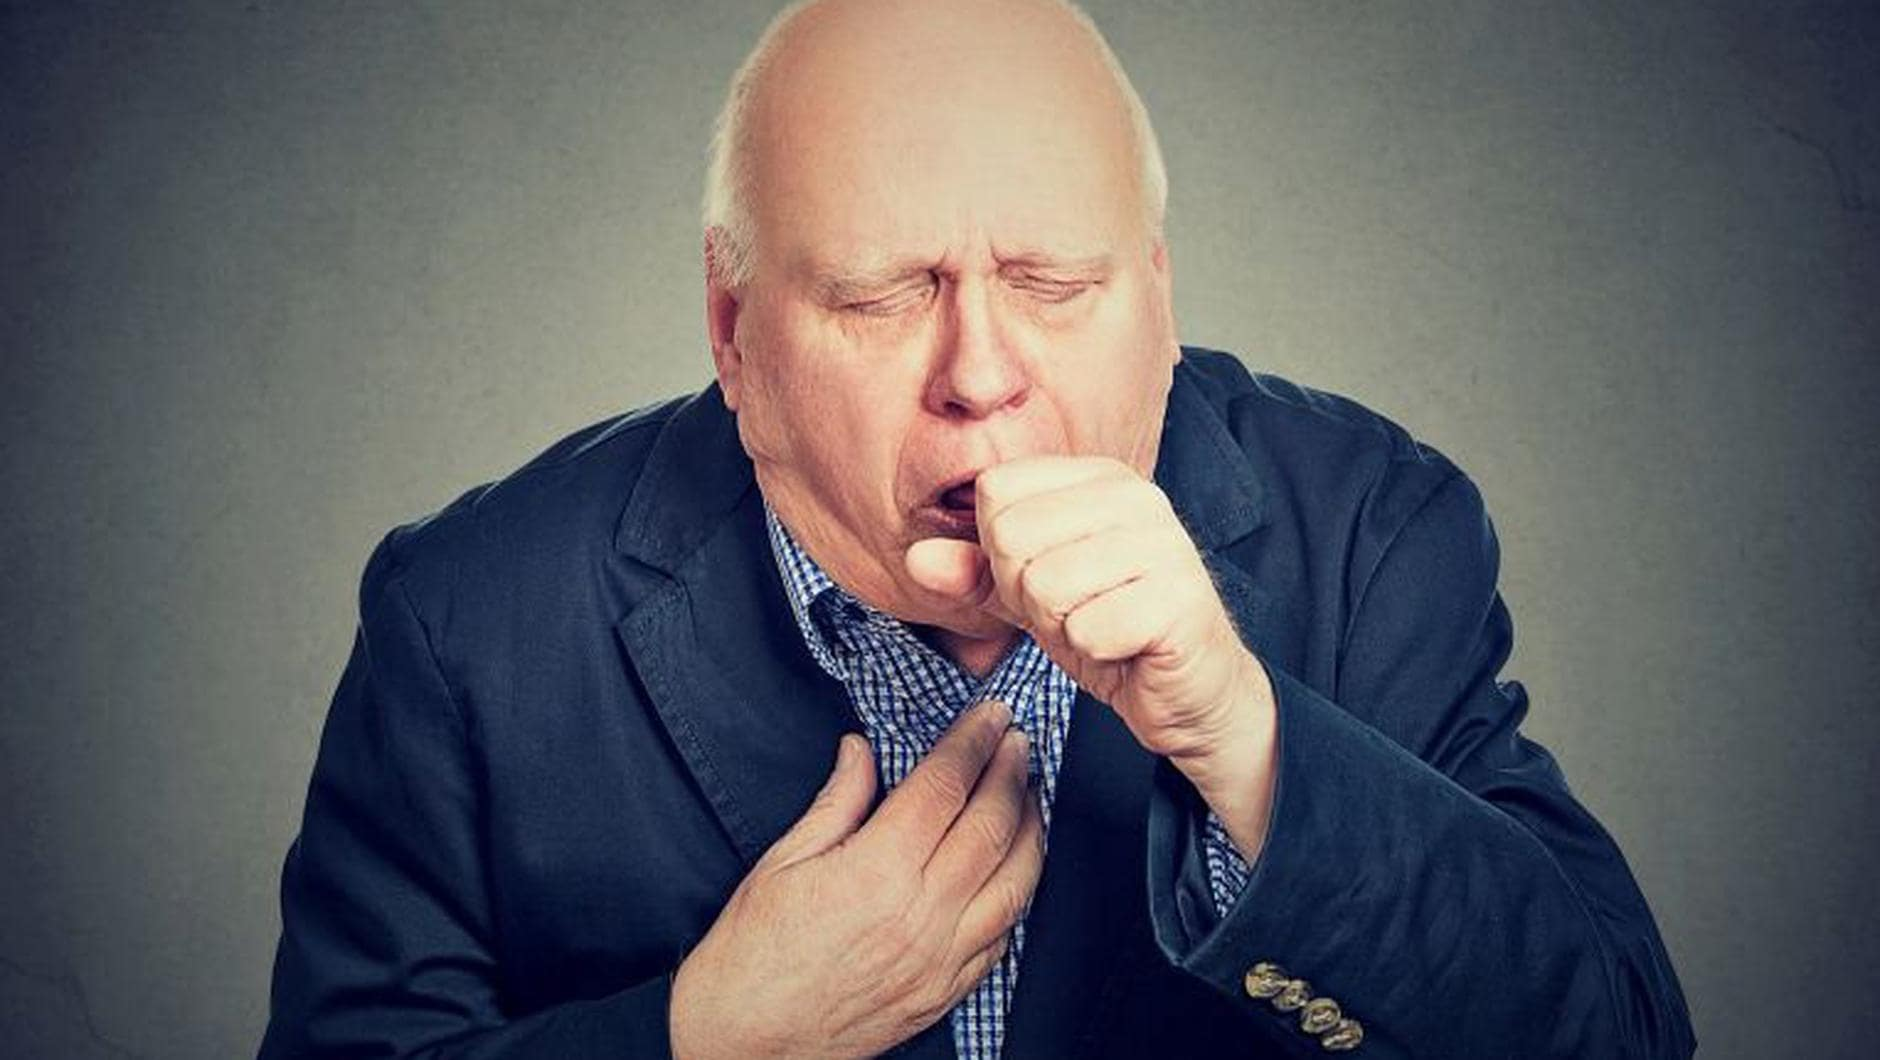 Image of man coughing. Hyfe - Hyfe runs on any Android phone, making it easy to deploy and scale